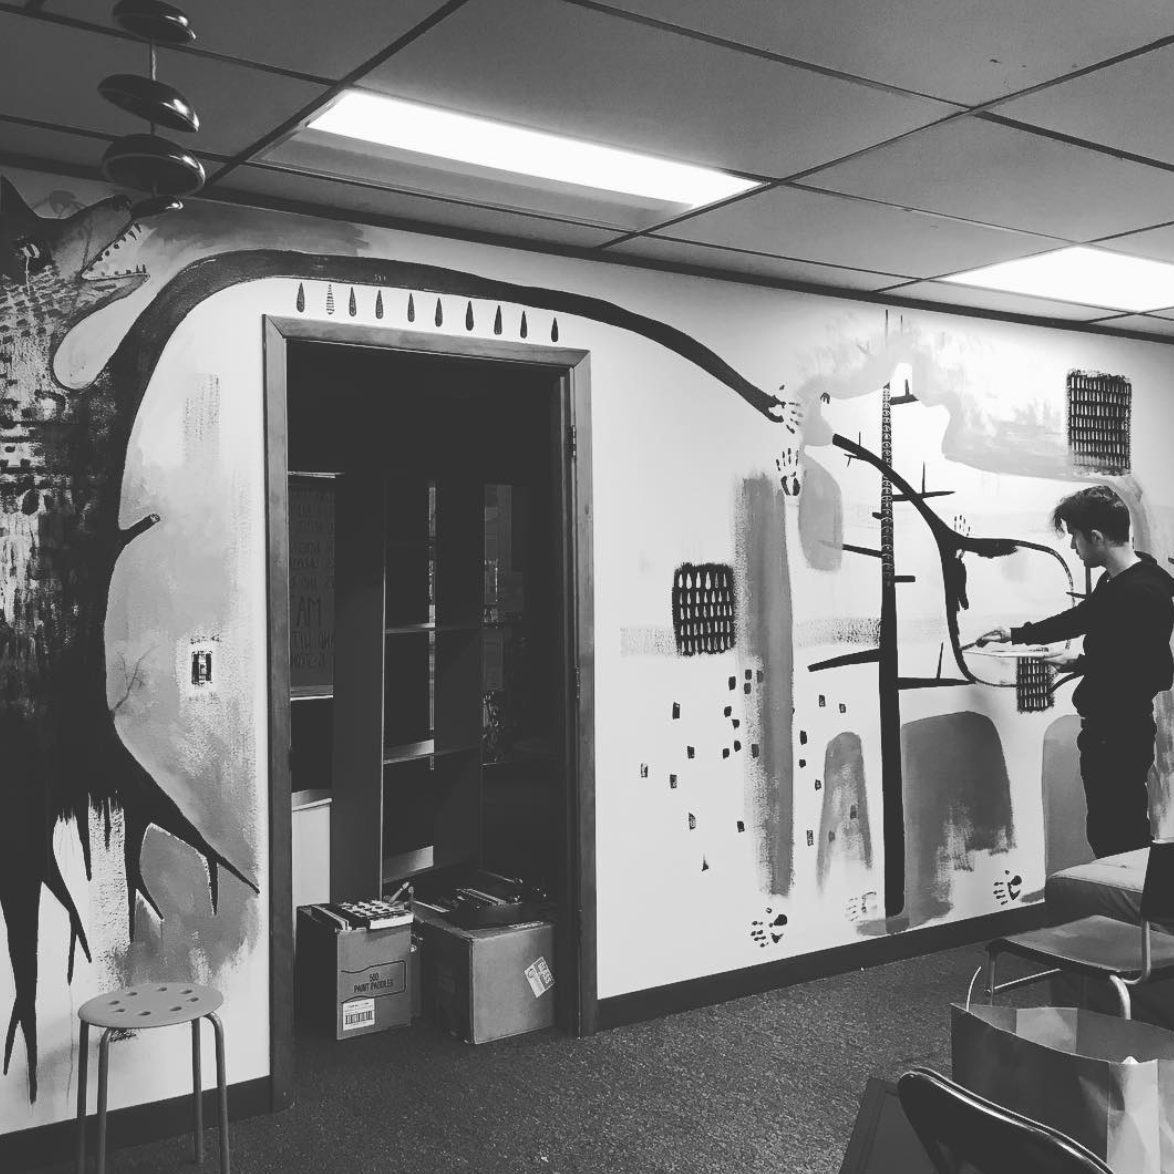 Jesse's mural at Marrow, in its early stages.